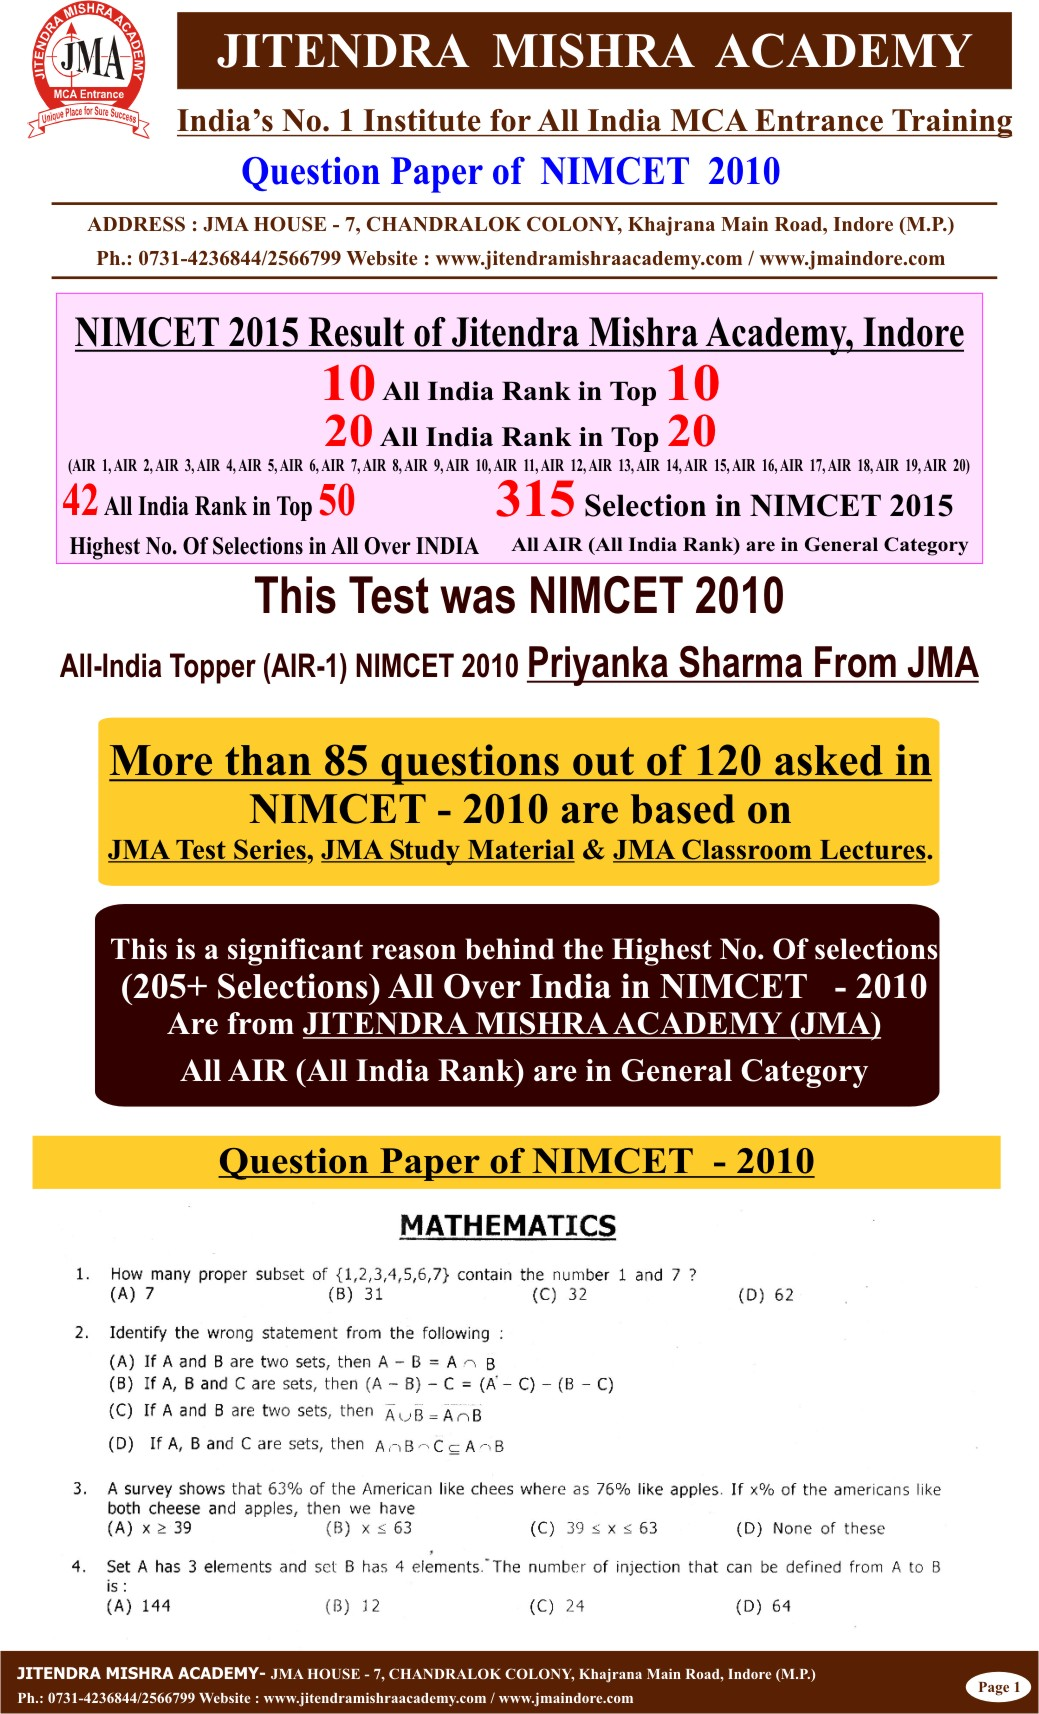 NIMCET - 2010 (FIRST PAGE)